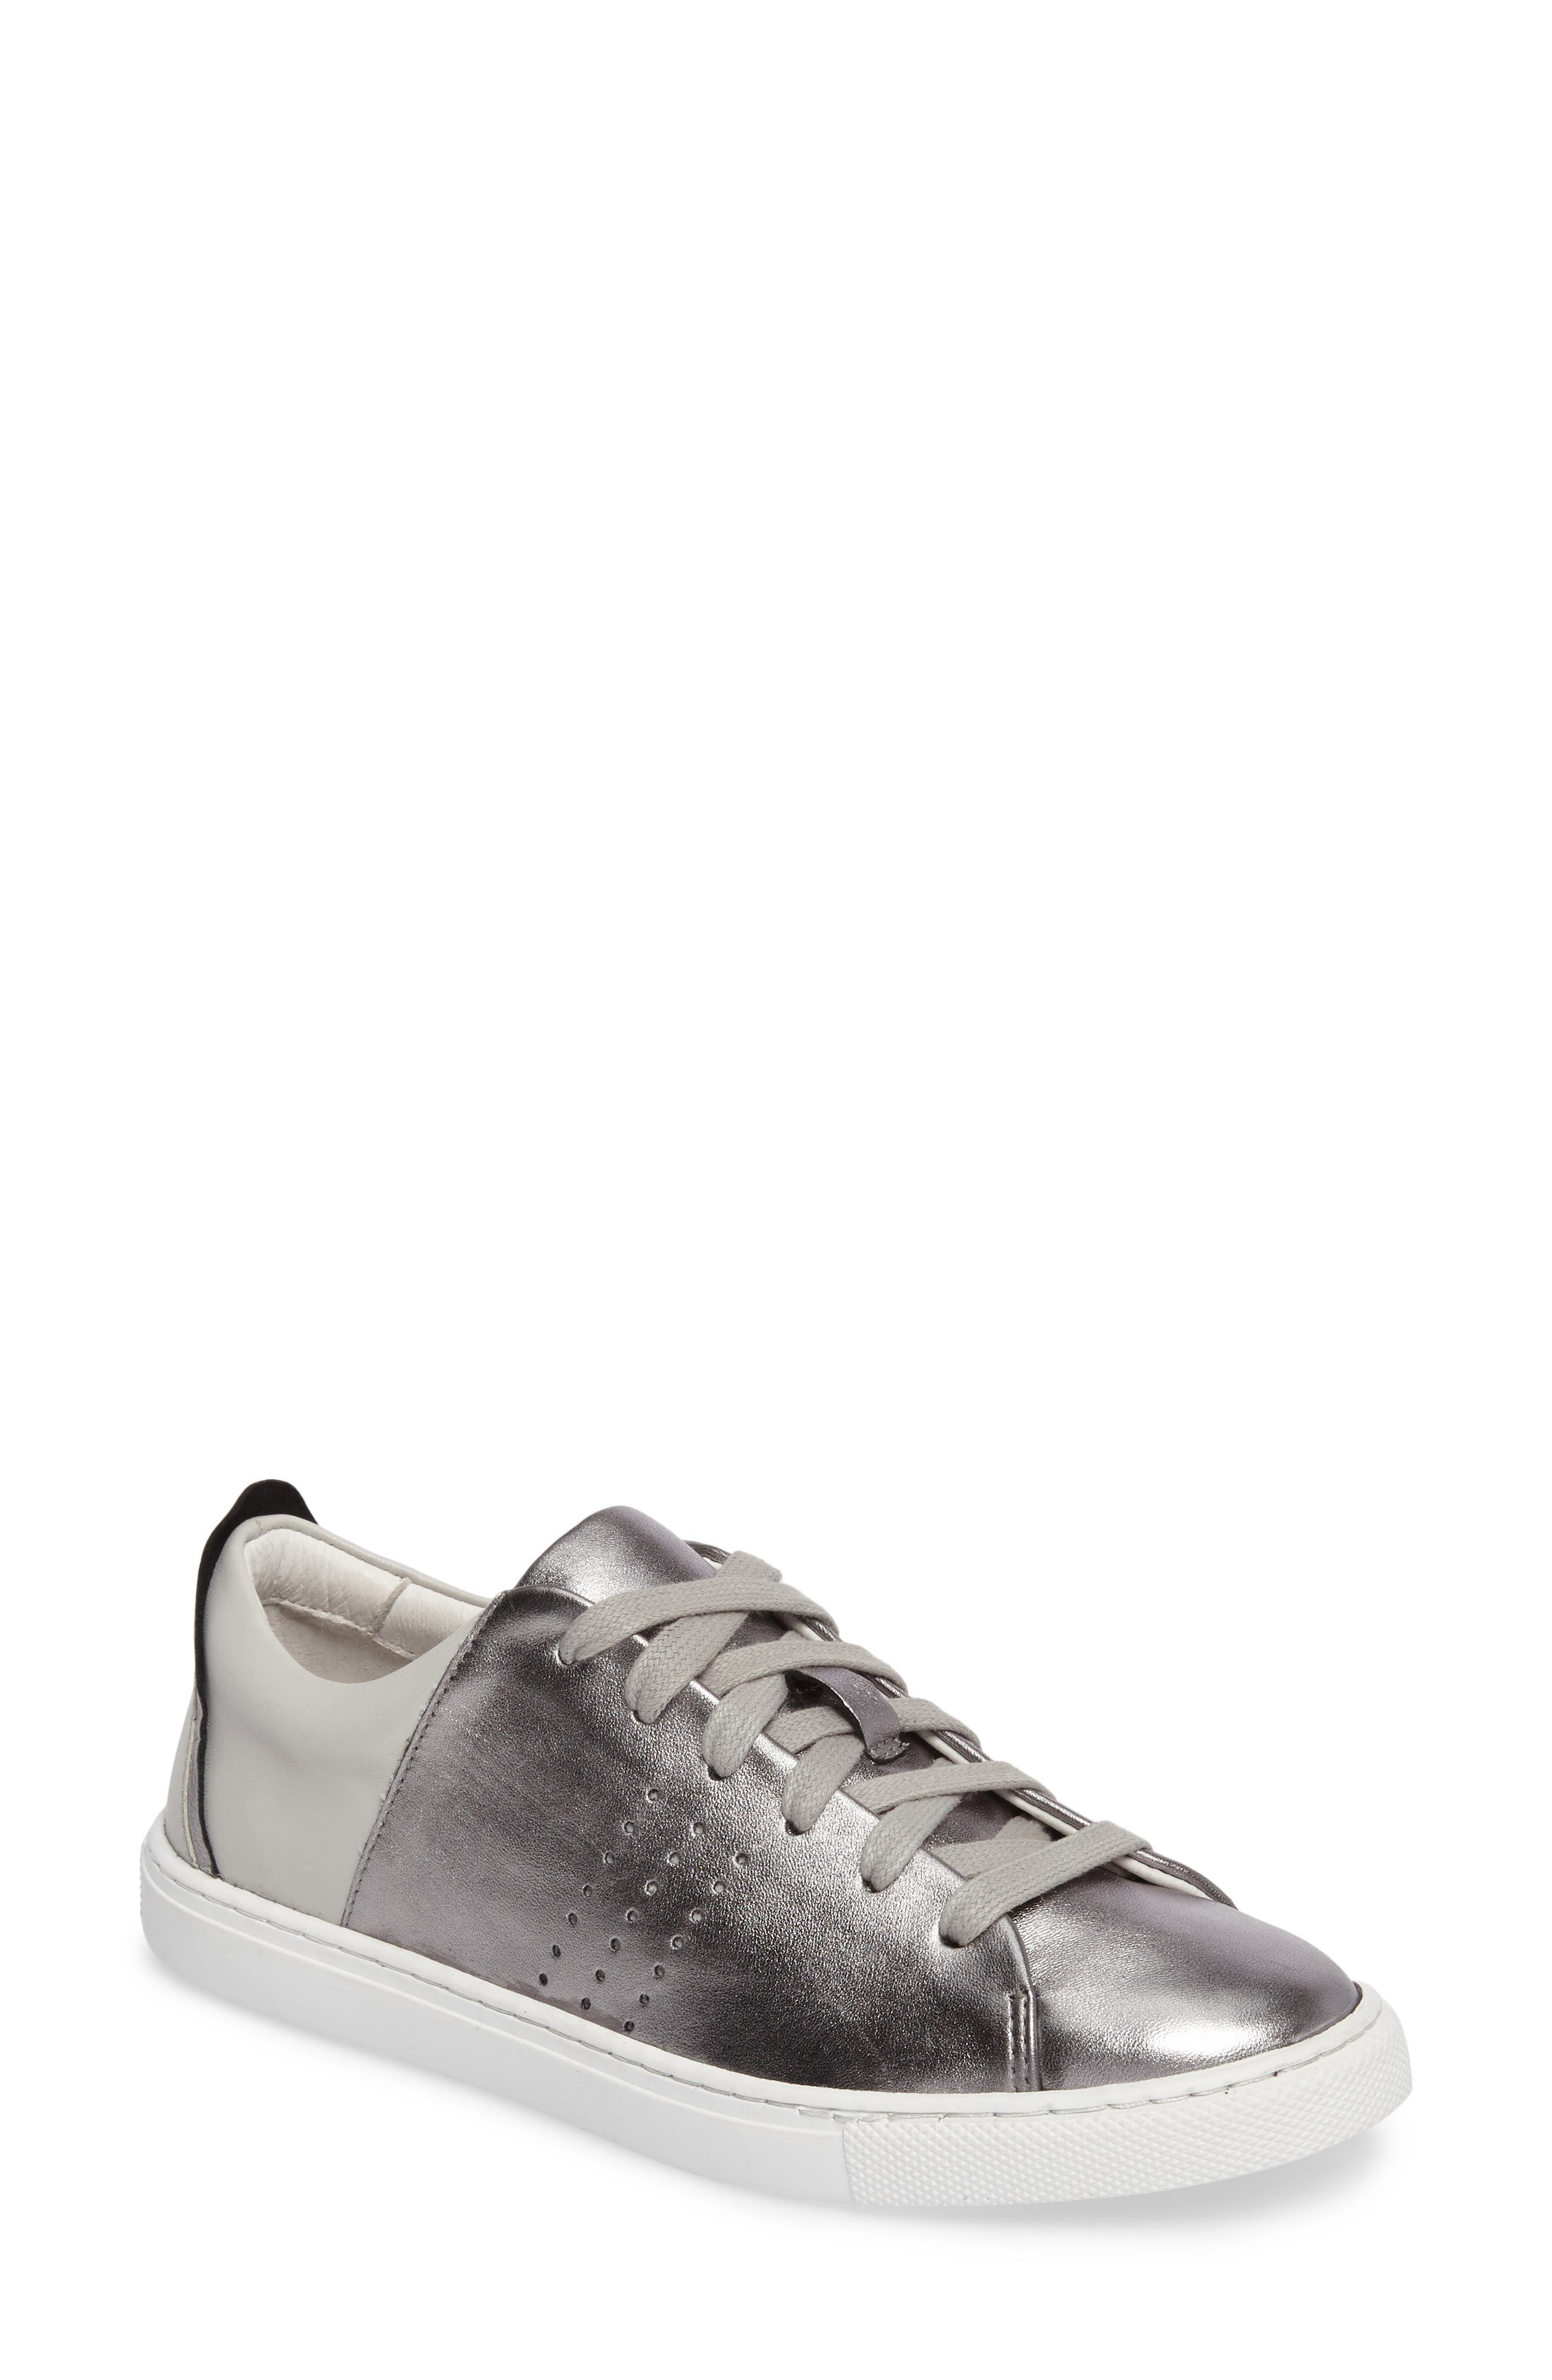 Splits Two-Tone Perforated Sneaker,                             Main thumbnail 1, color,                             045